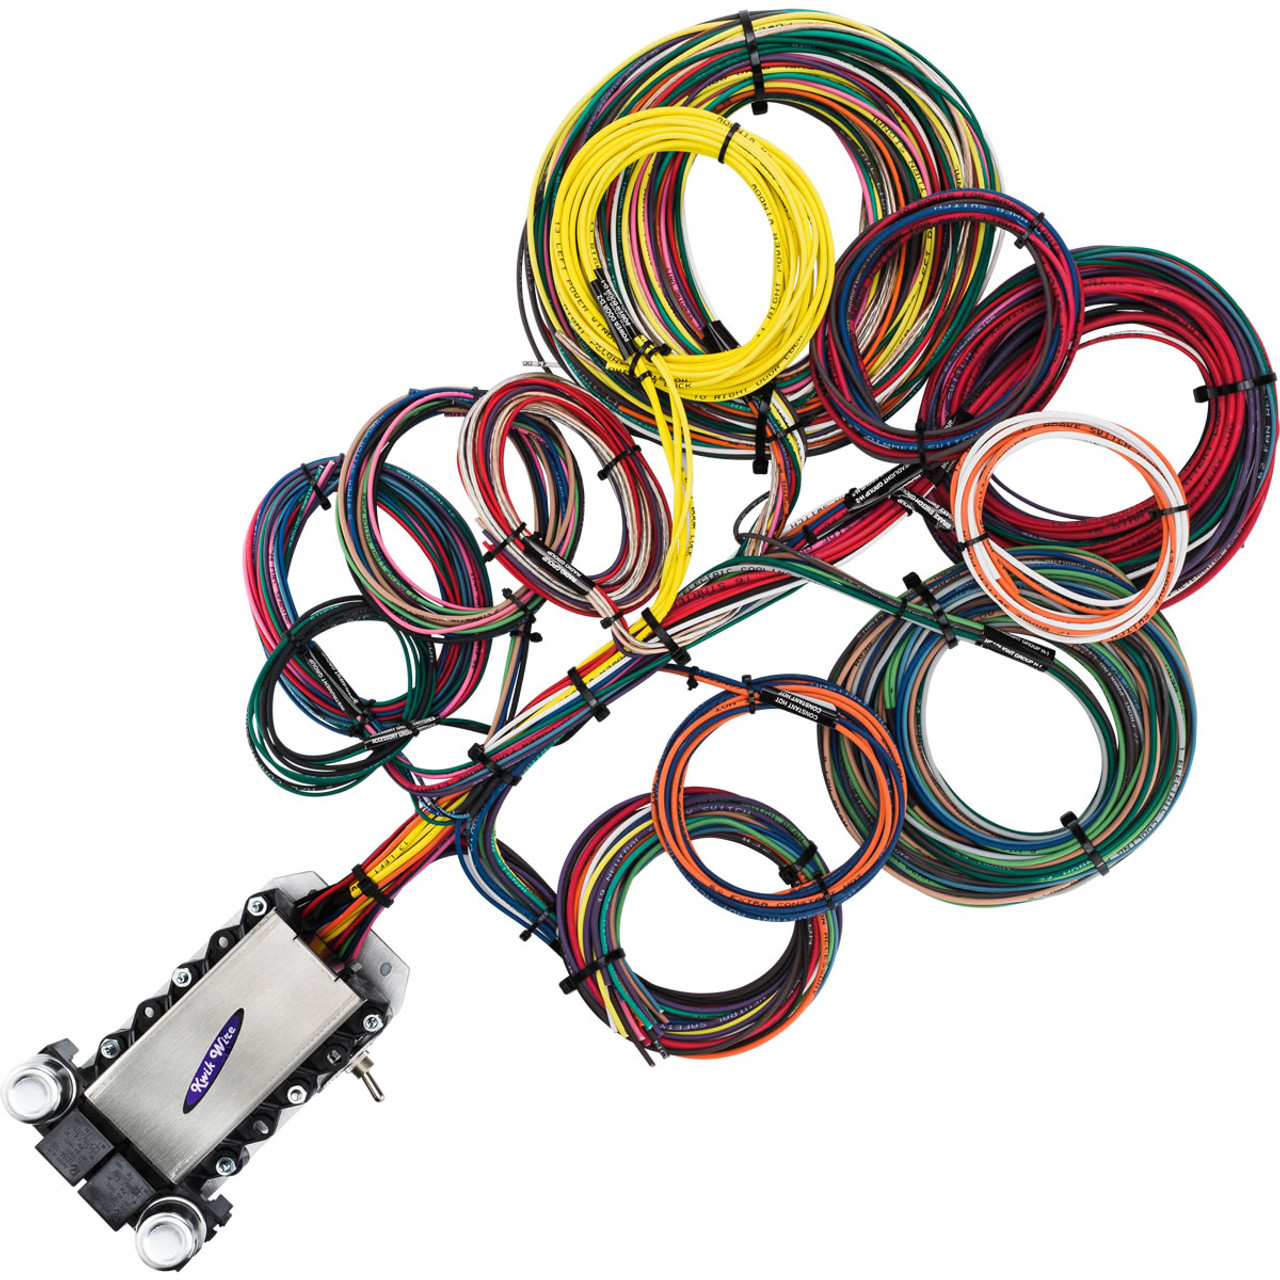 Ez2 Wire Harness Great Installation Of Wiring Diagram Ez Instructions 22 Circuit Kwikwire Com Electrify Your Ride Rh